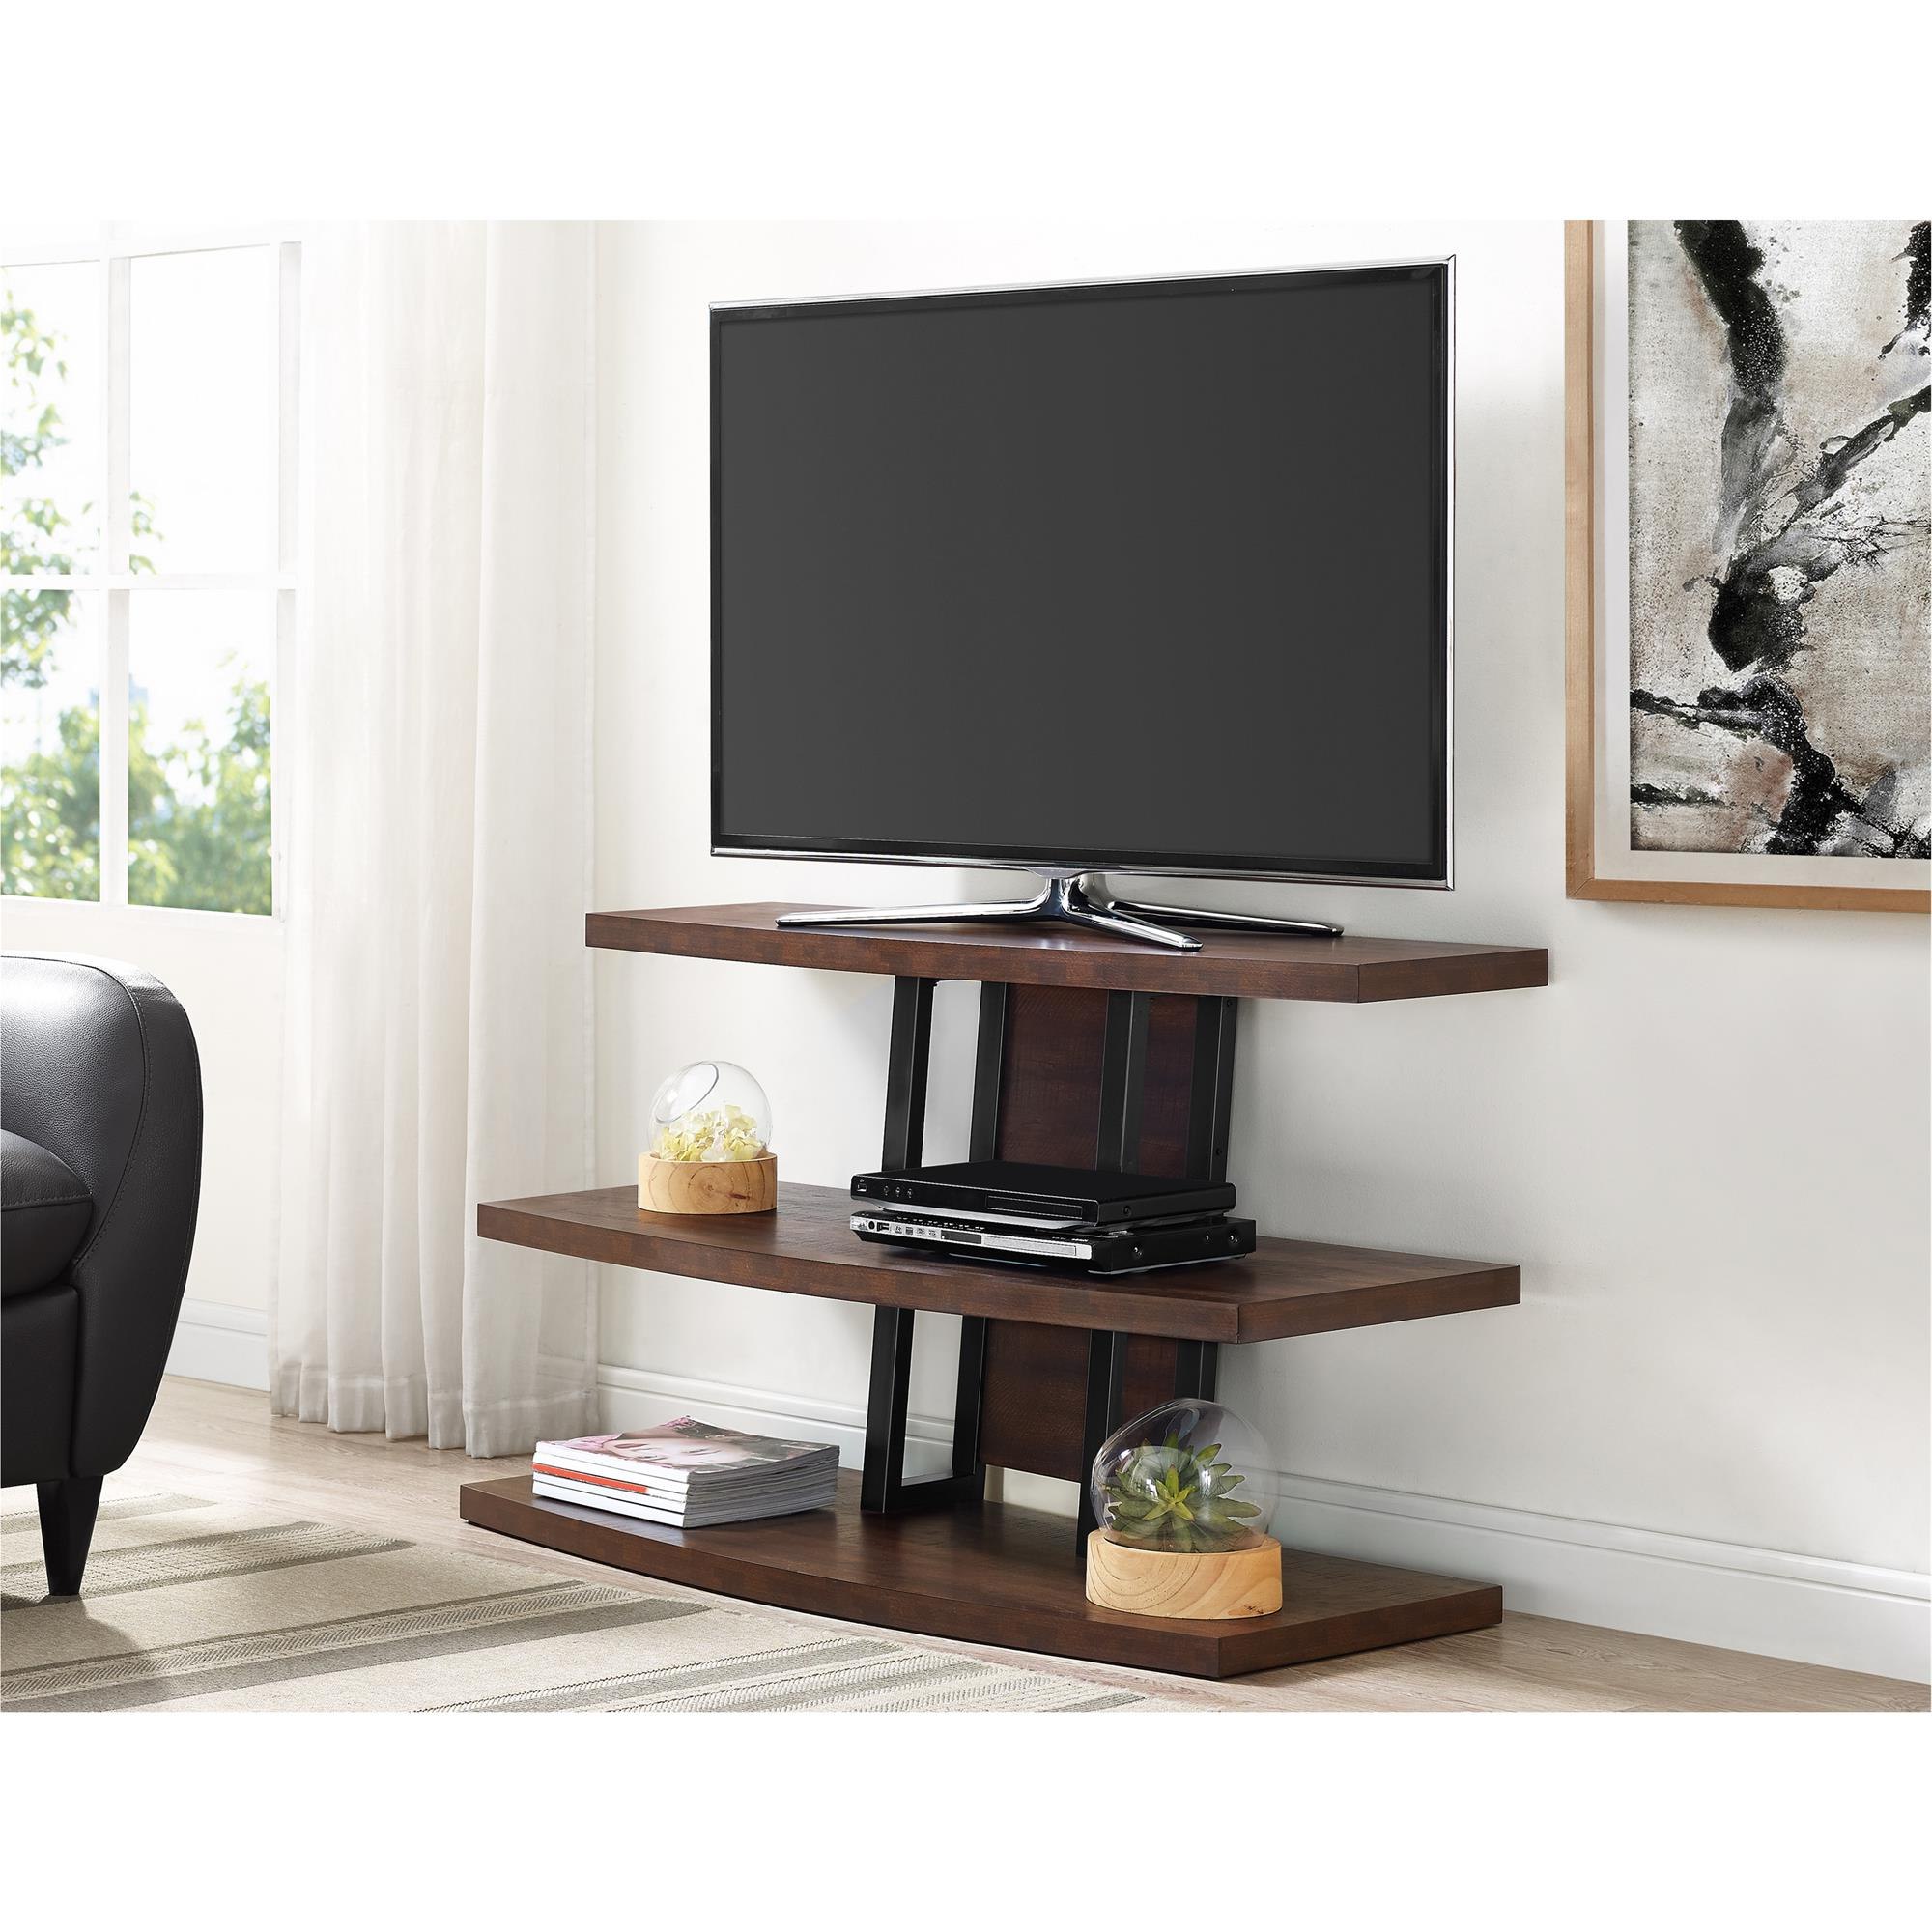 "Ameriwood Home Castling Tv Stand For Tvs Up To 55"", Espresso Regarding Forma 65 Inch Tv Stands (View 4 of 20)"